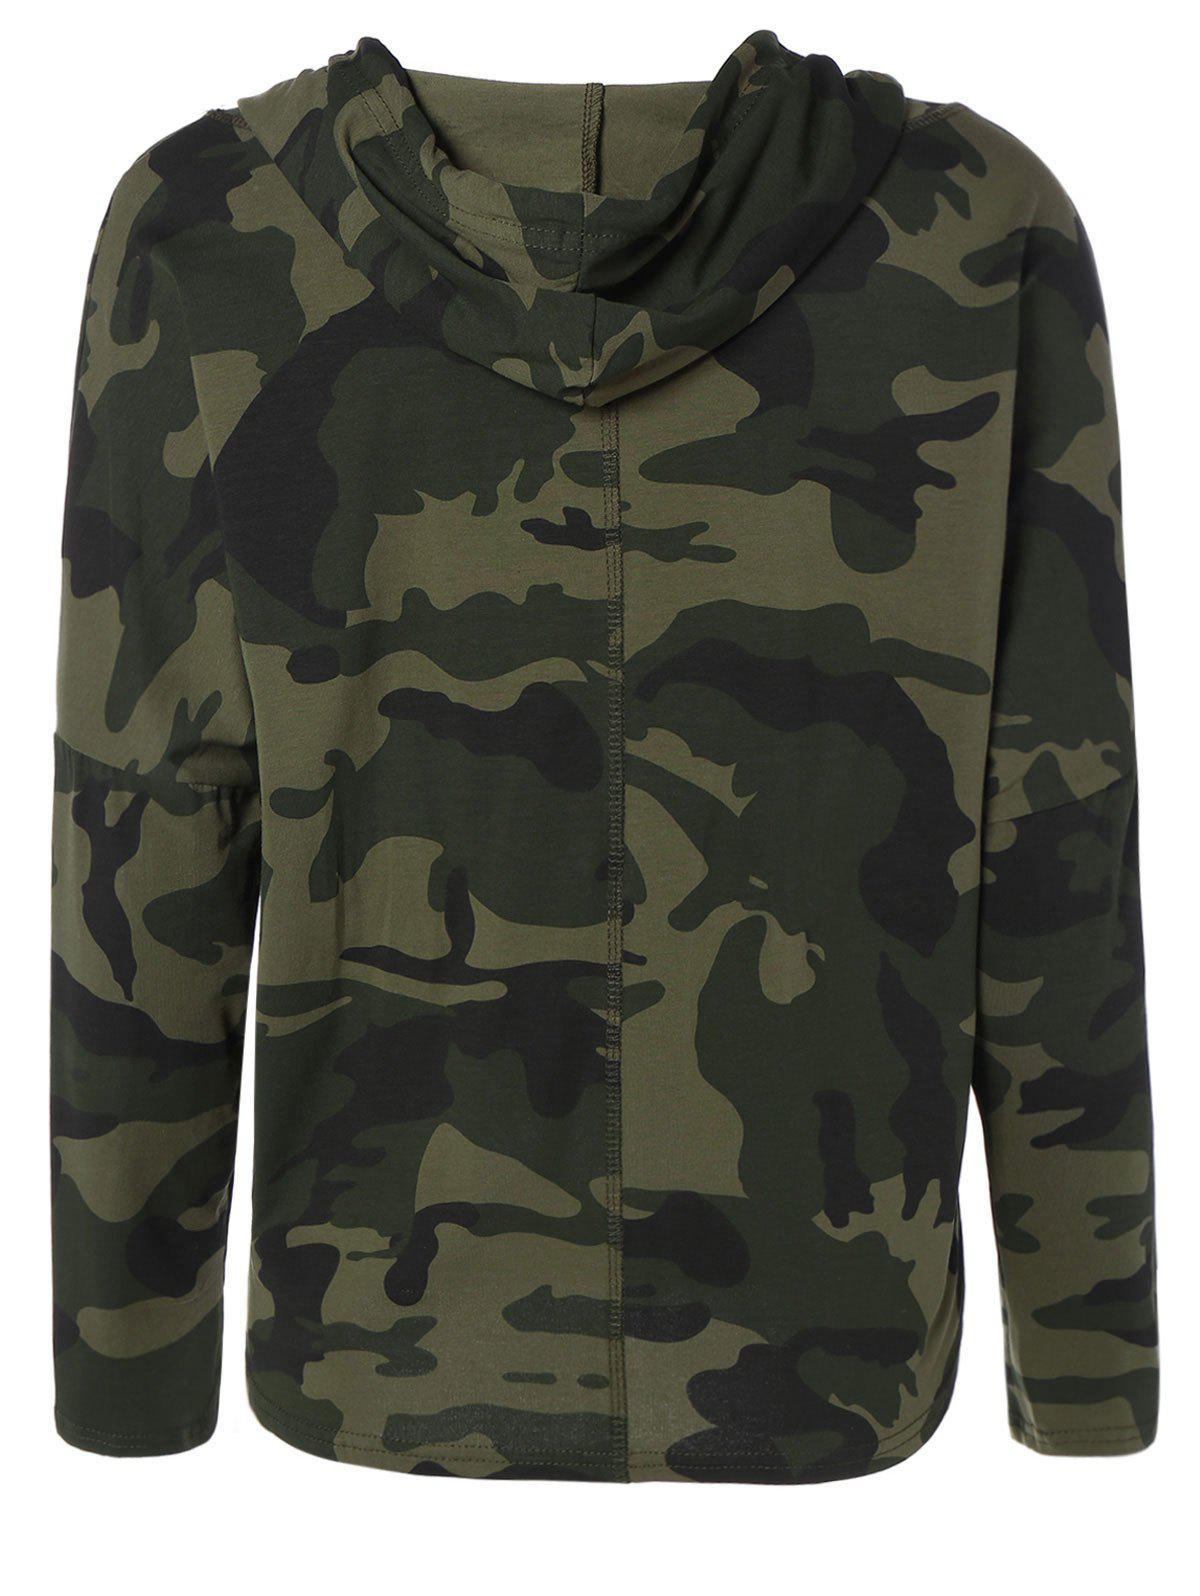 Pocket Drawstring Army Camouflage Hooded T-Shirt - ARMY GREEN S